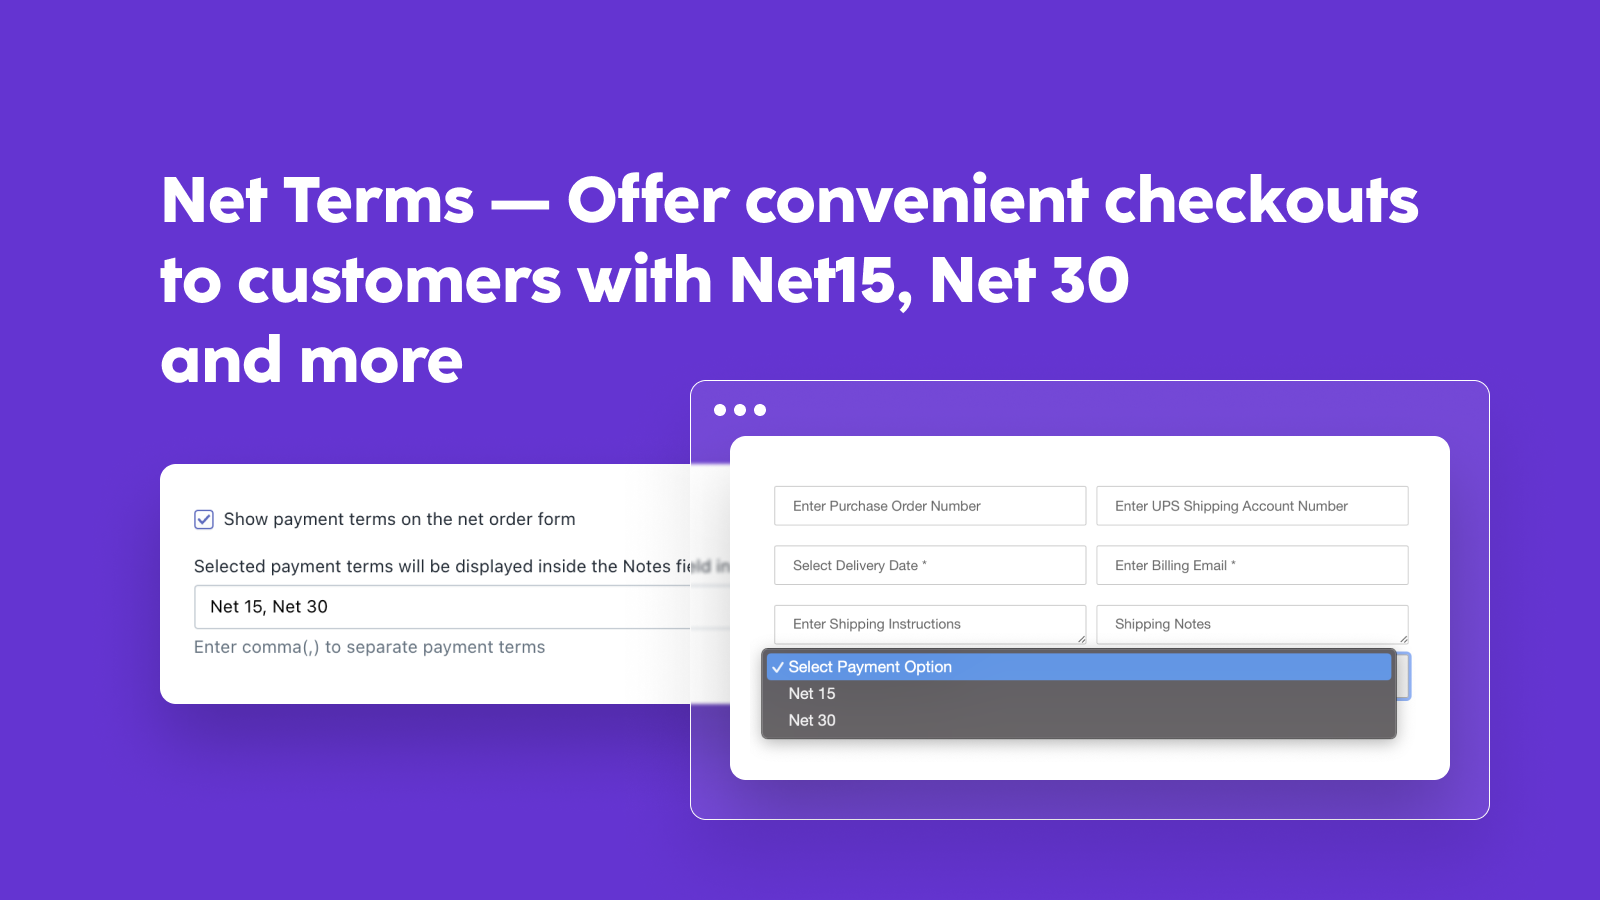 Offer convenient checkouts to customers with Net15, Net 30